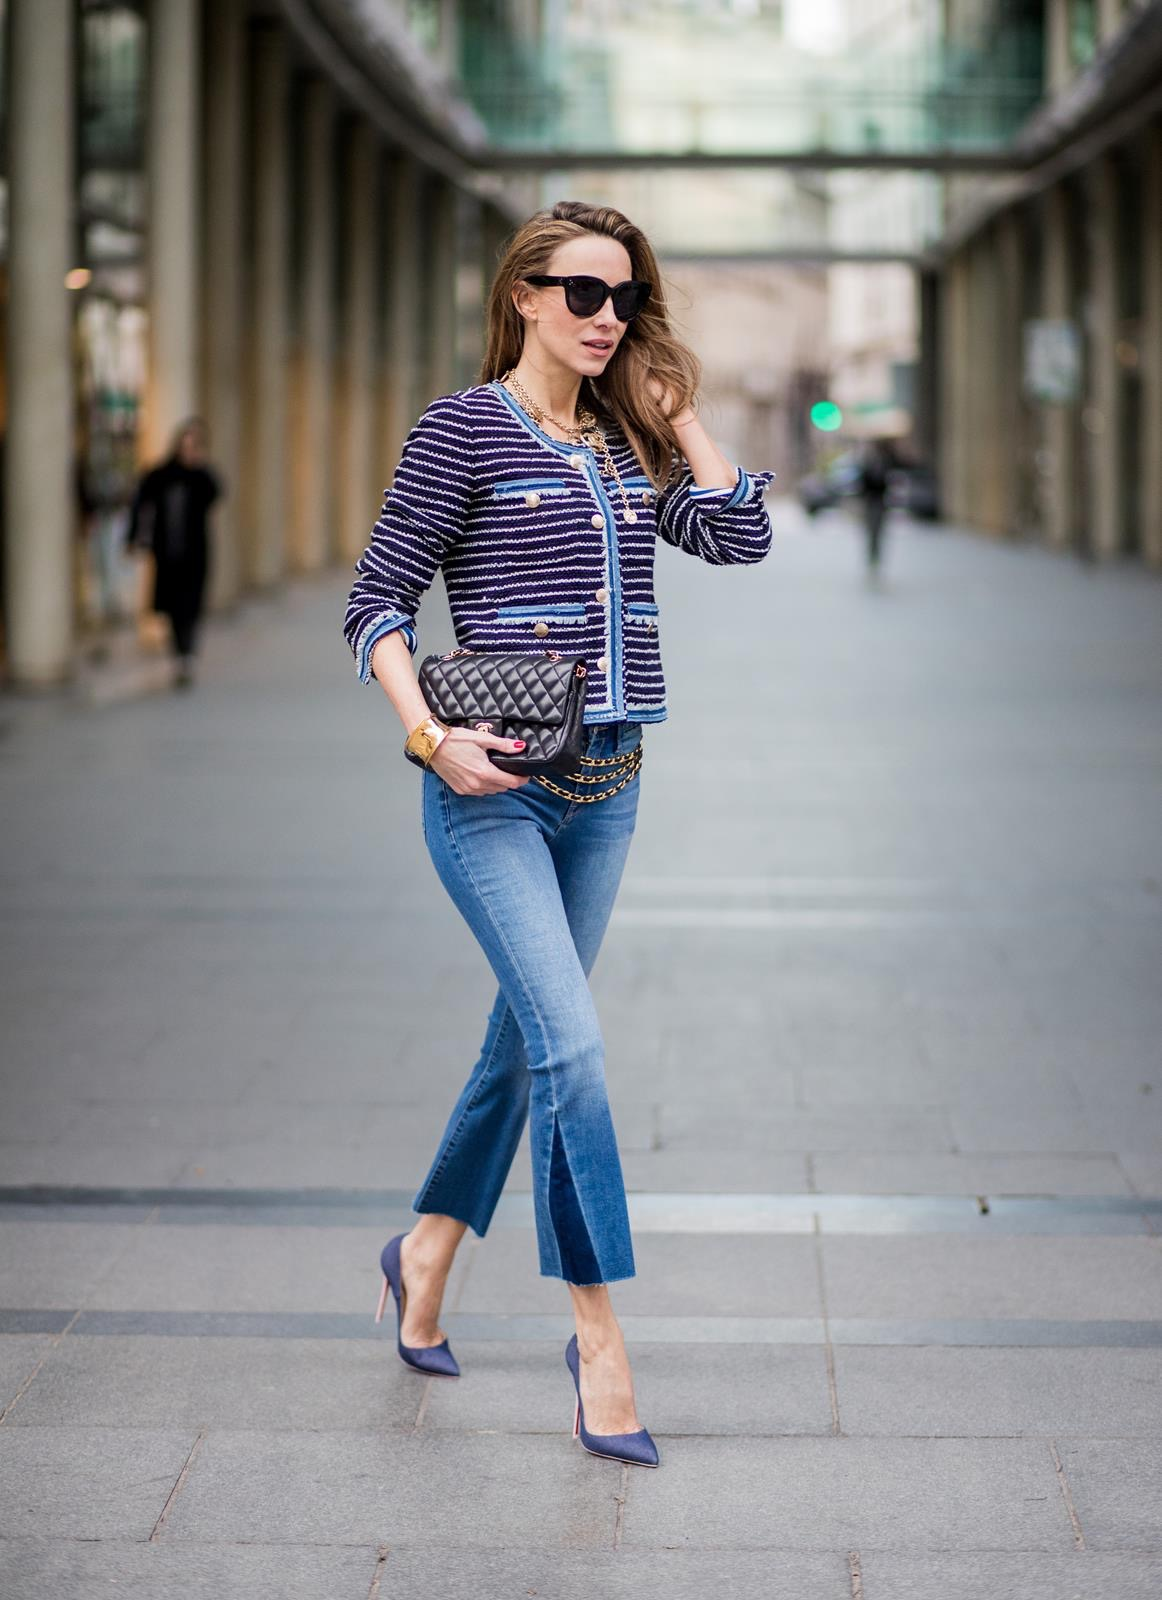 236ddf81ff23 Alexandra Lapp wearing Chanel Vintage  a striped tweed jacket in marine  tones and flared jeans